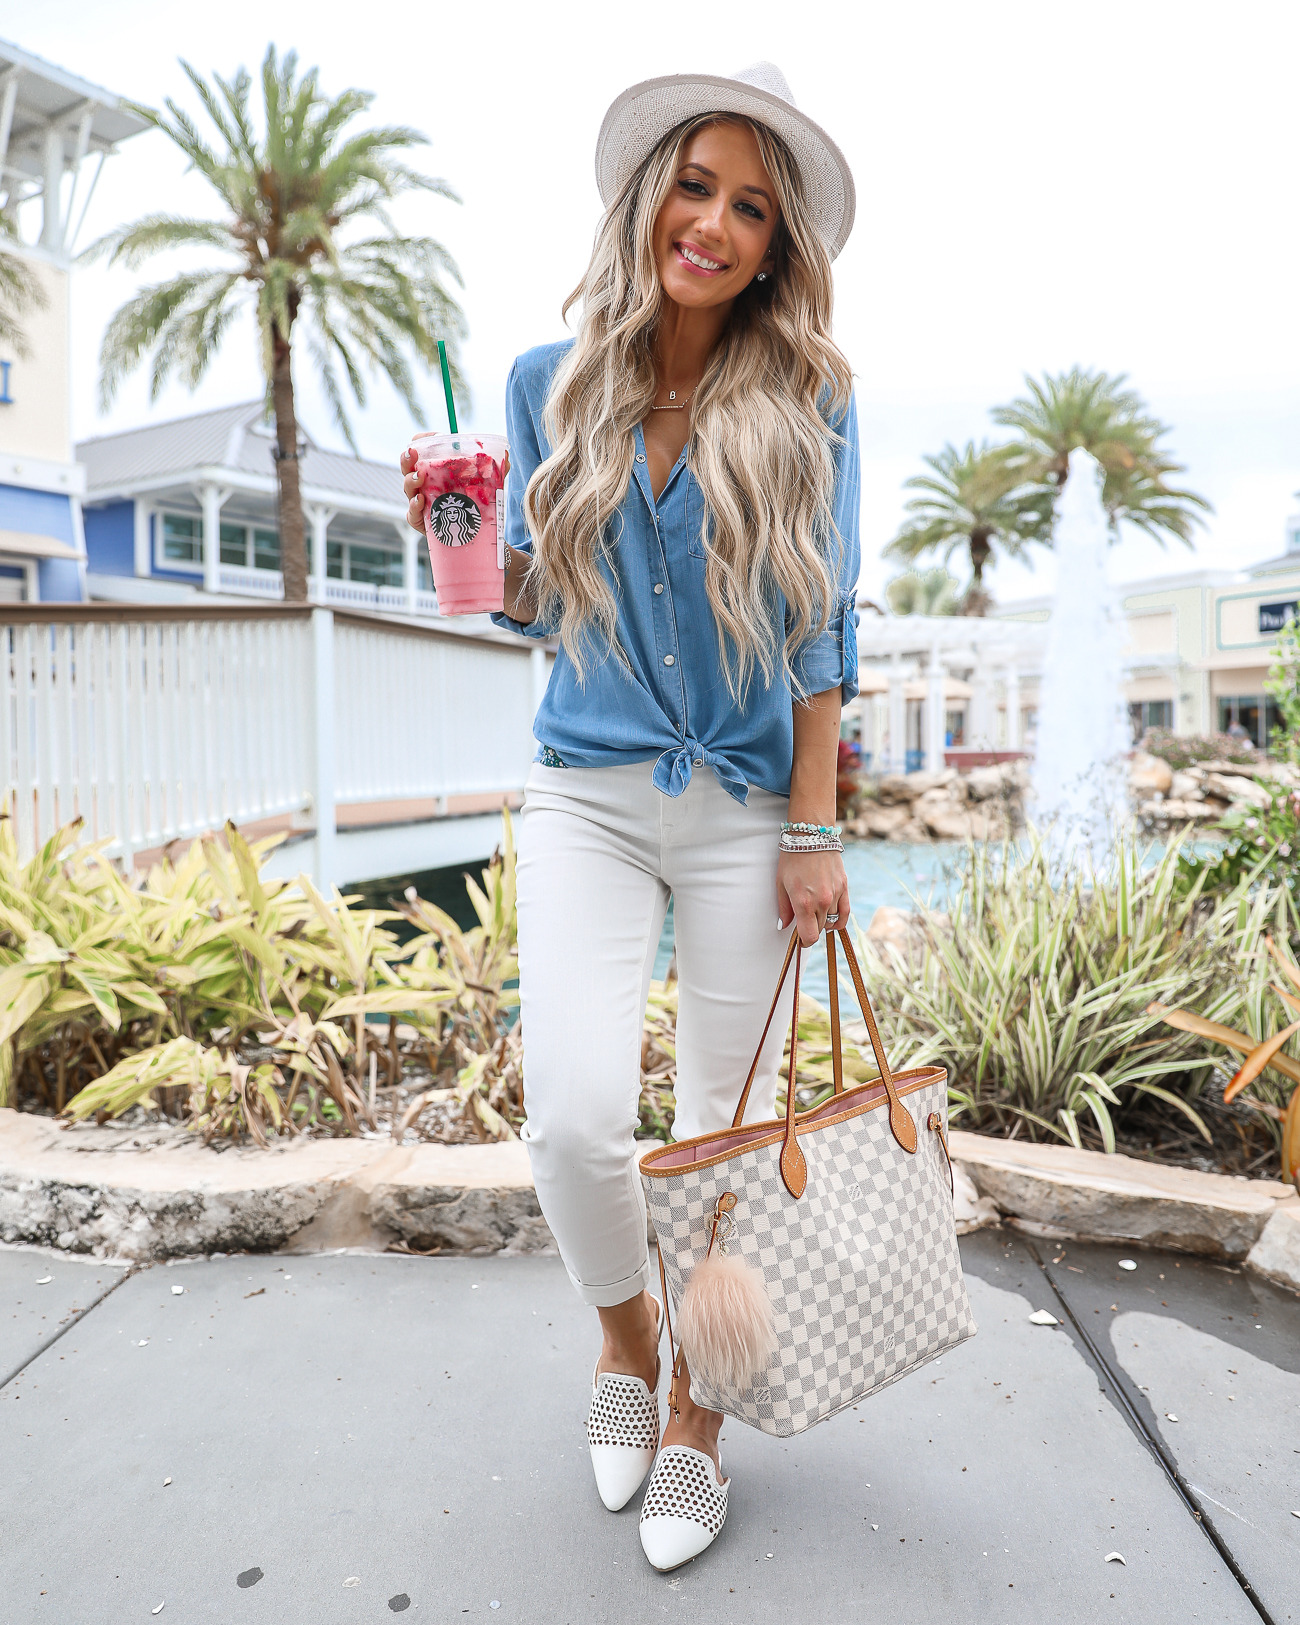 walmart Comfy Casual Florida Outfit White skinny jeans Chambray button up top White mules Louis Vuitton Neverfull MM Starbucks Pink Drink Laura Beverlin-1